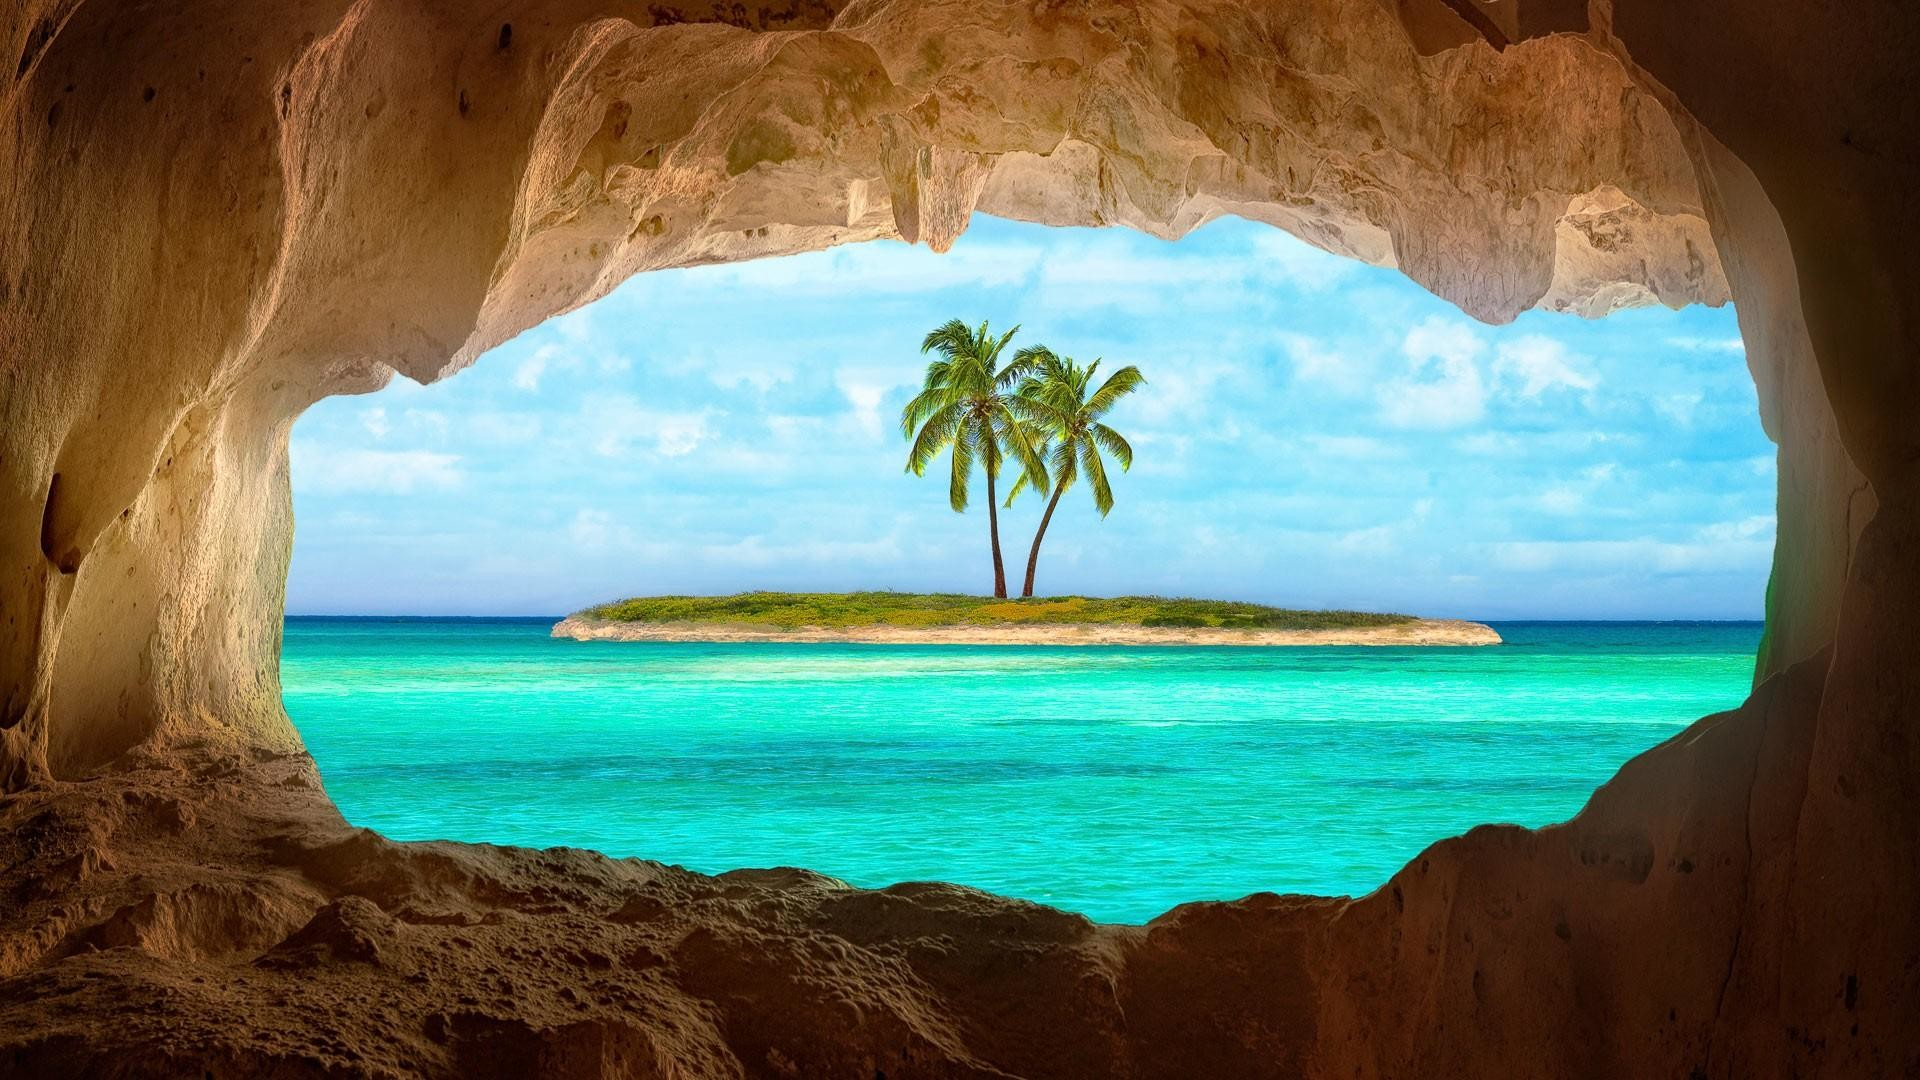 1920x1080 Old Indian cave on Turks and Caicos Island wallpaper